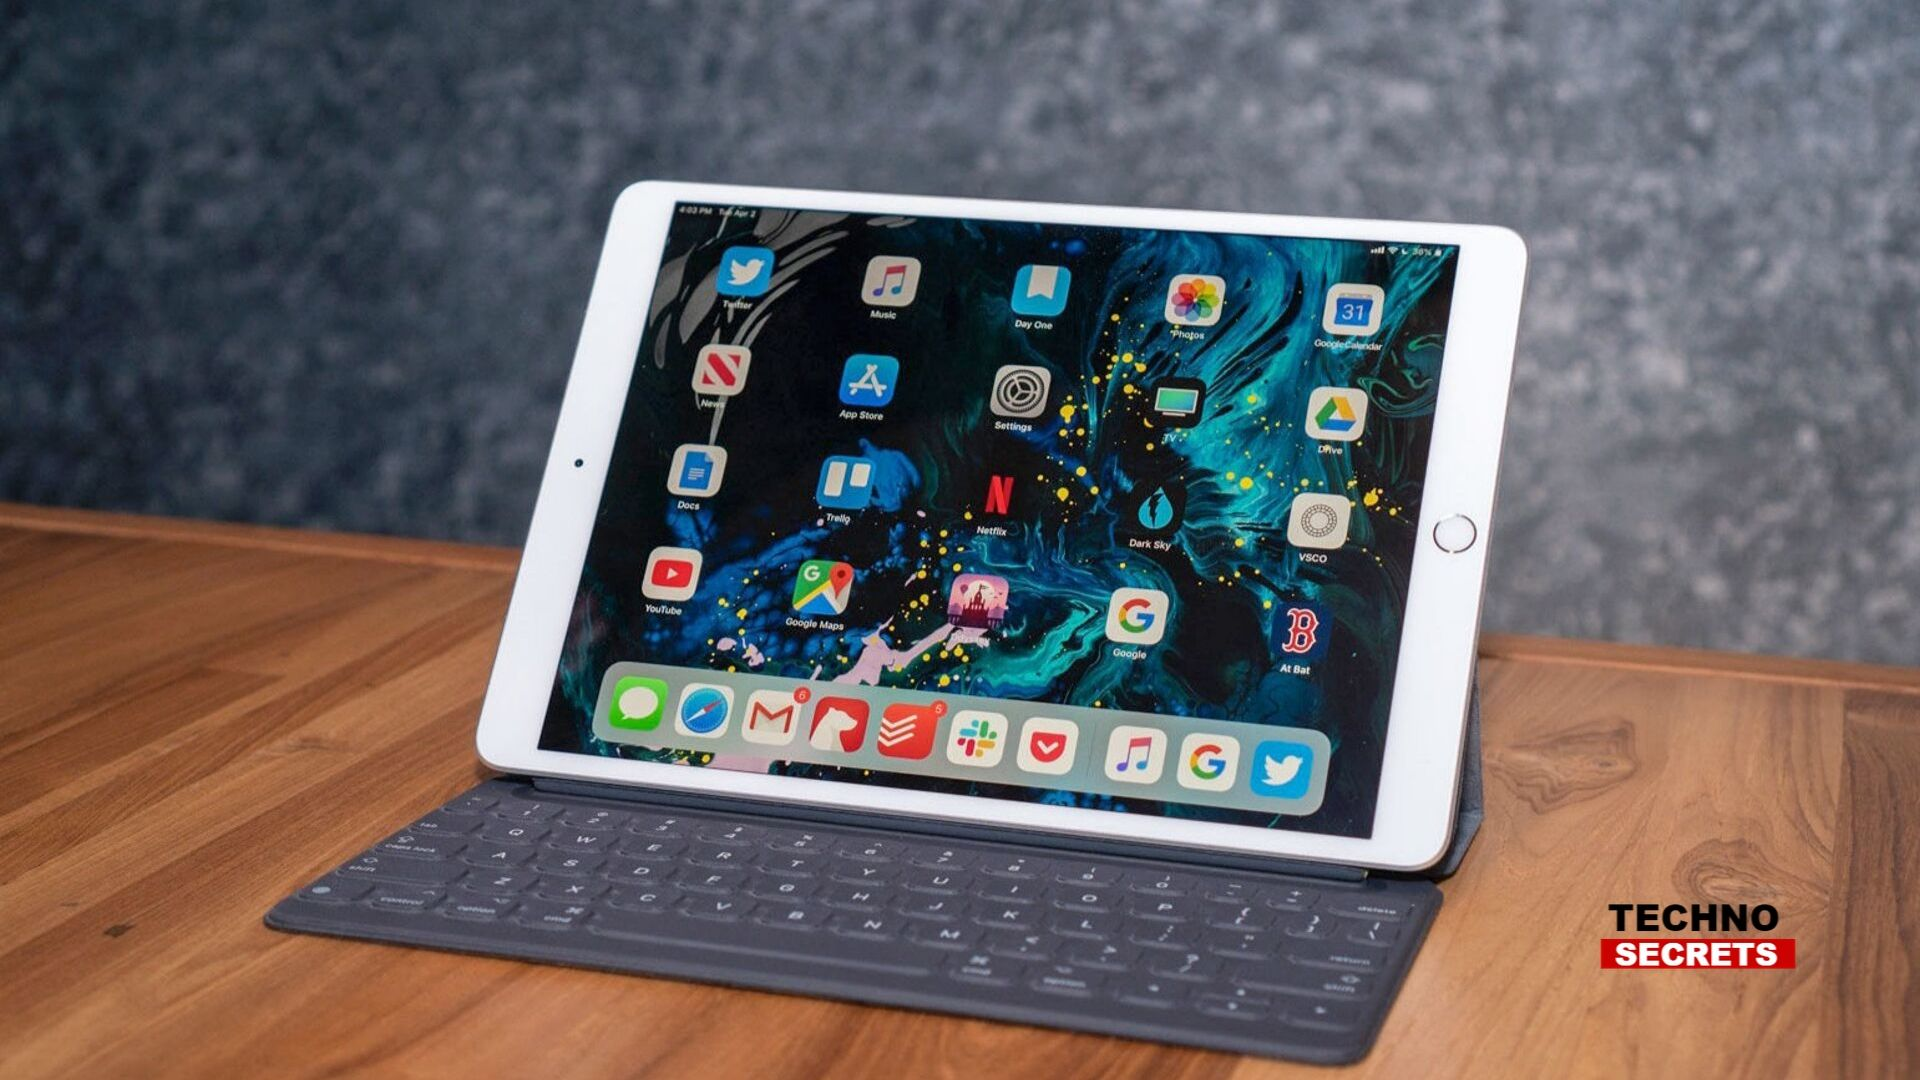 Apple Site Shows, iPad to on Go Sale in India Starting on October 4